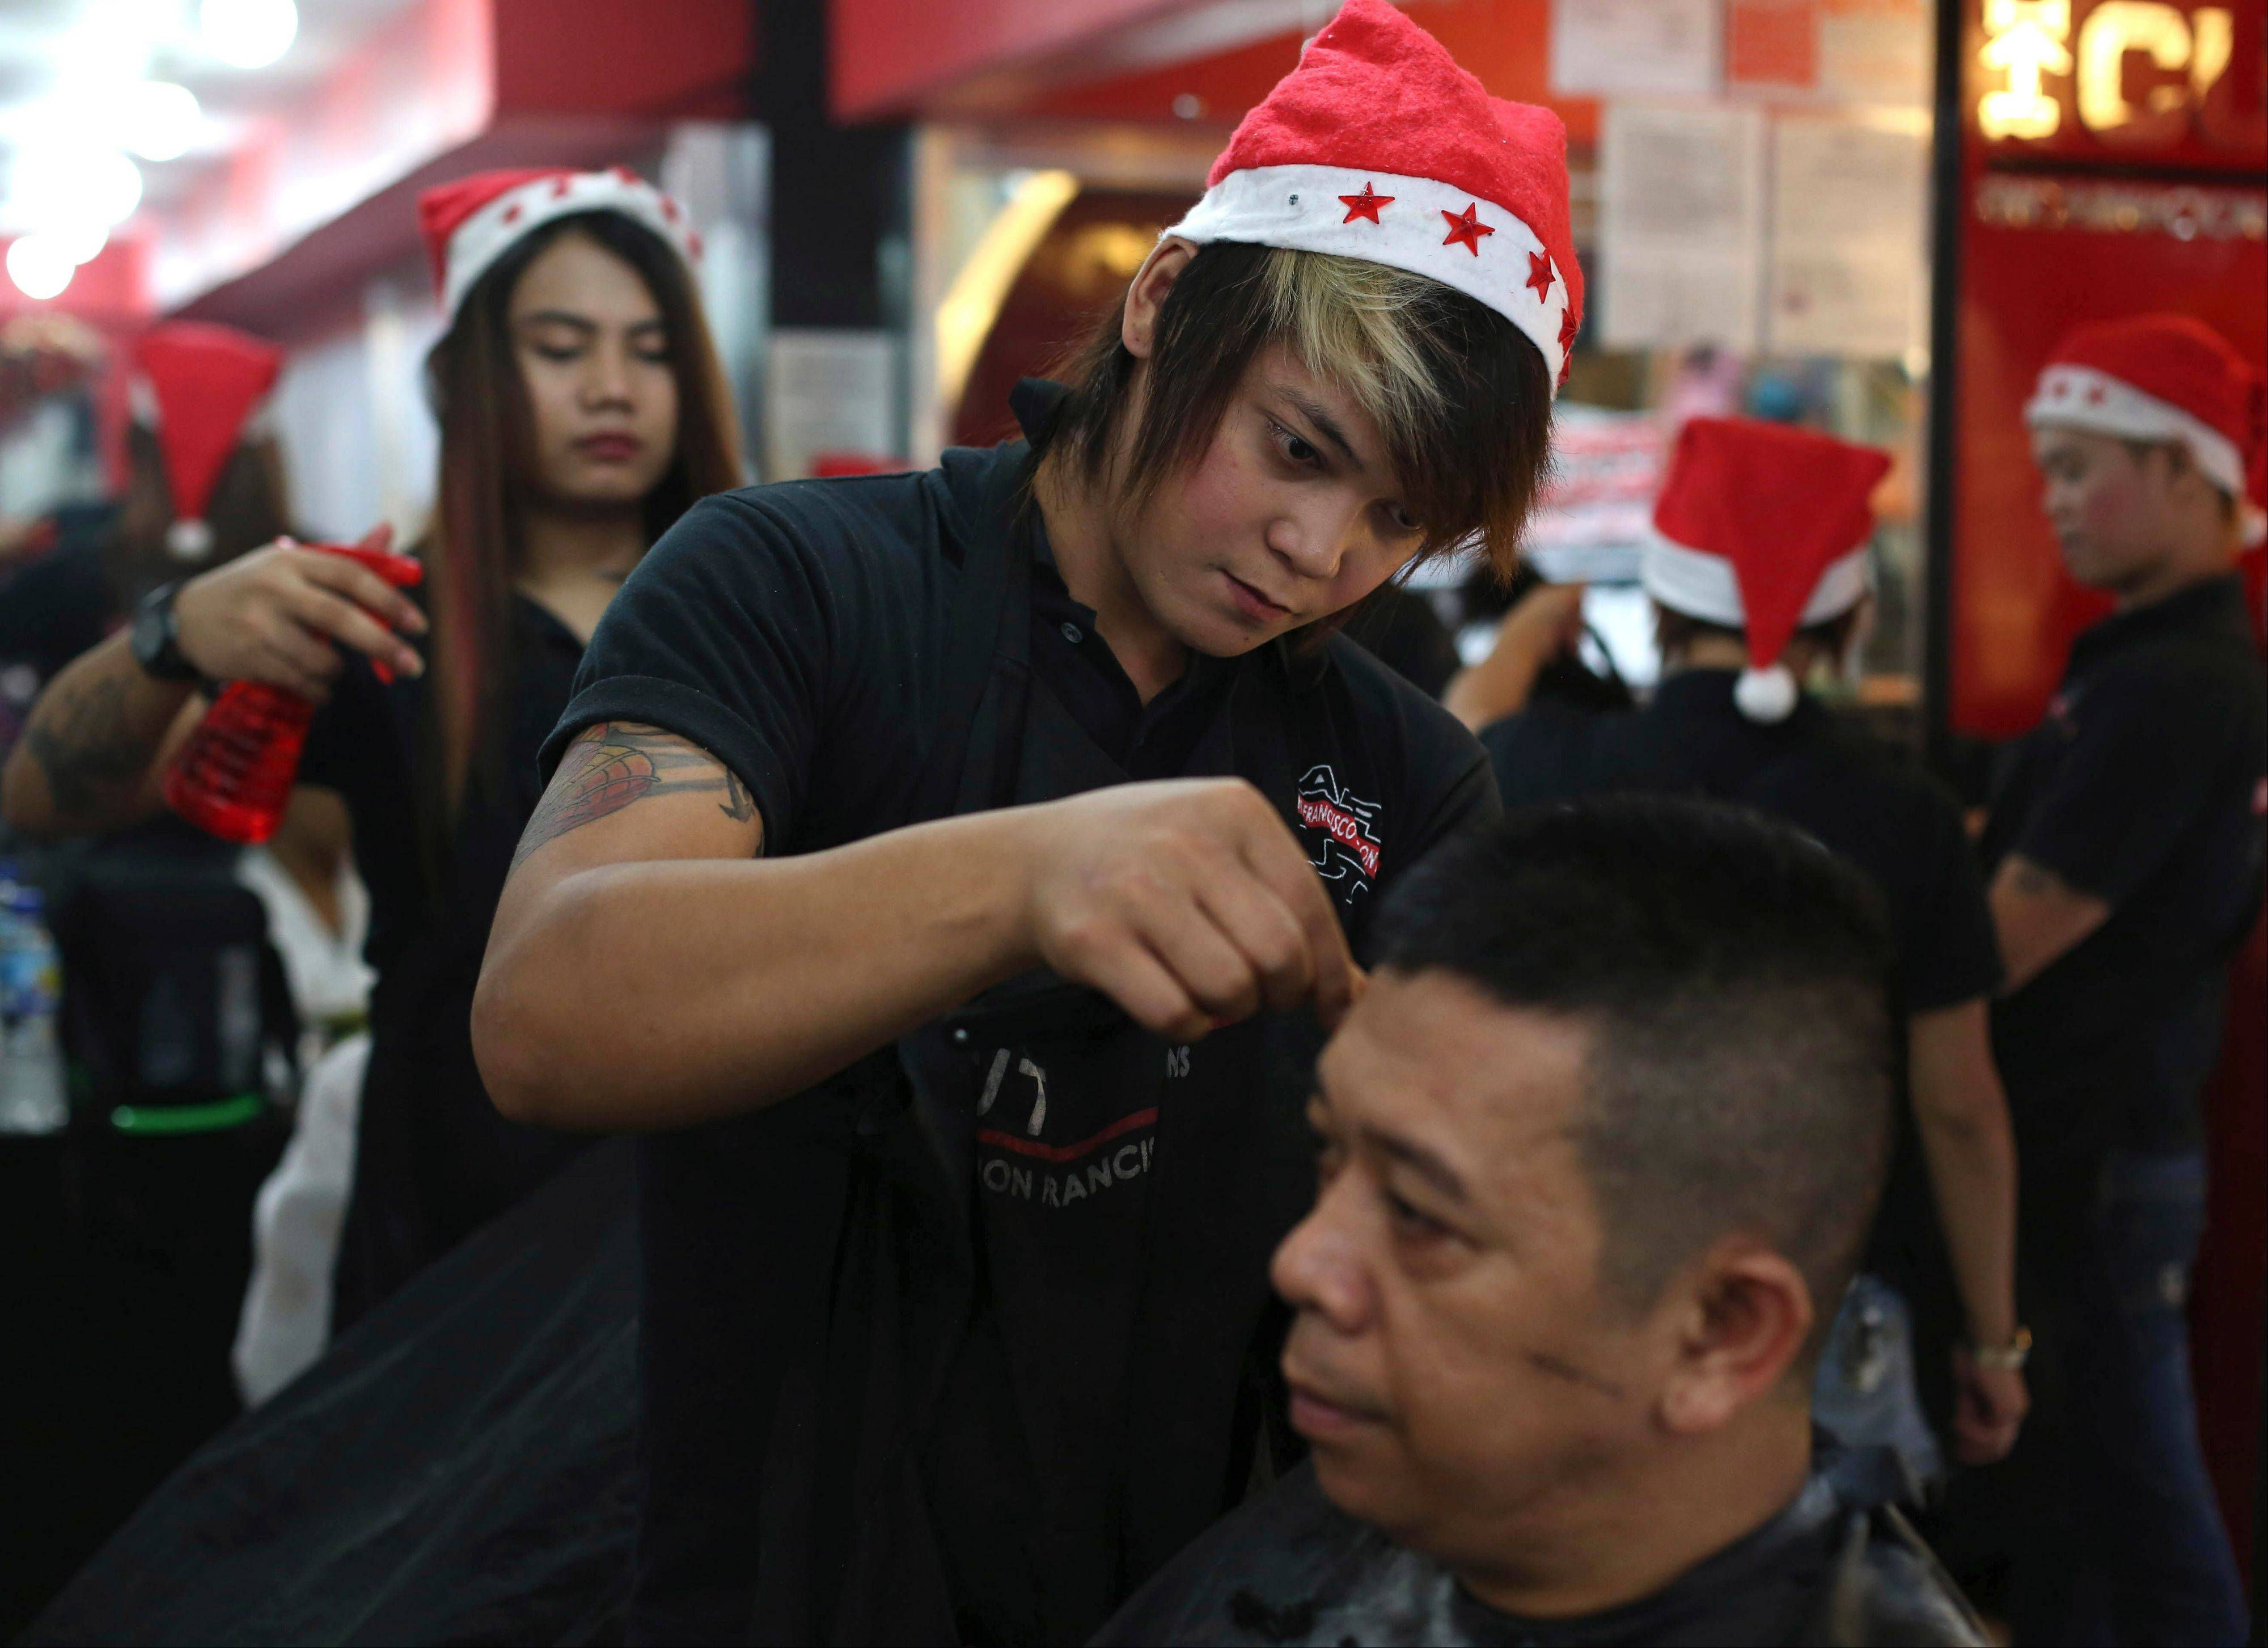 Filipino hairdressers wear Santa hats as they cut hair during Christmas eve at a shop in downtown Manila, Philippines on Tuesday, Dec. 24, 2013. Christmas is one of the most important holidays in this predominantly Roman Catholic nation.